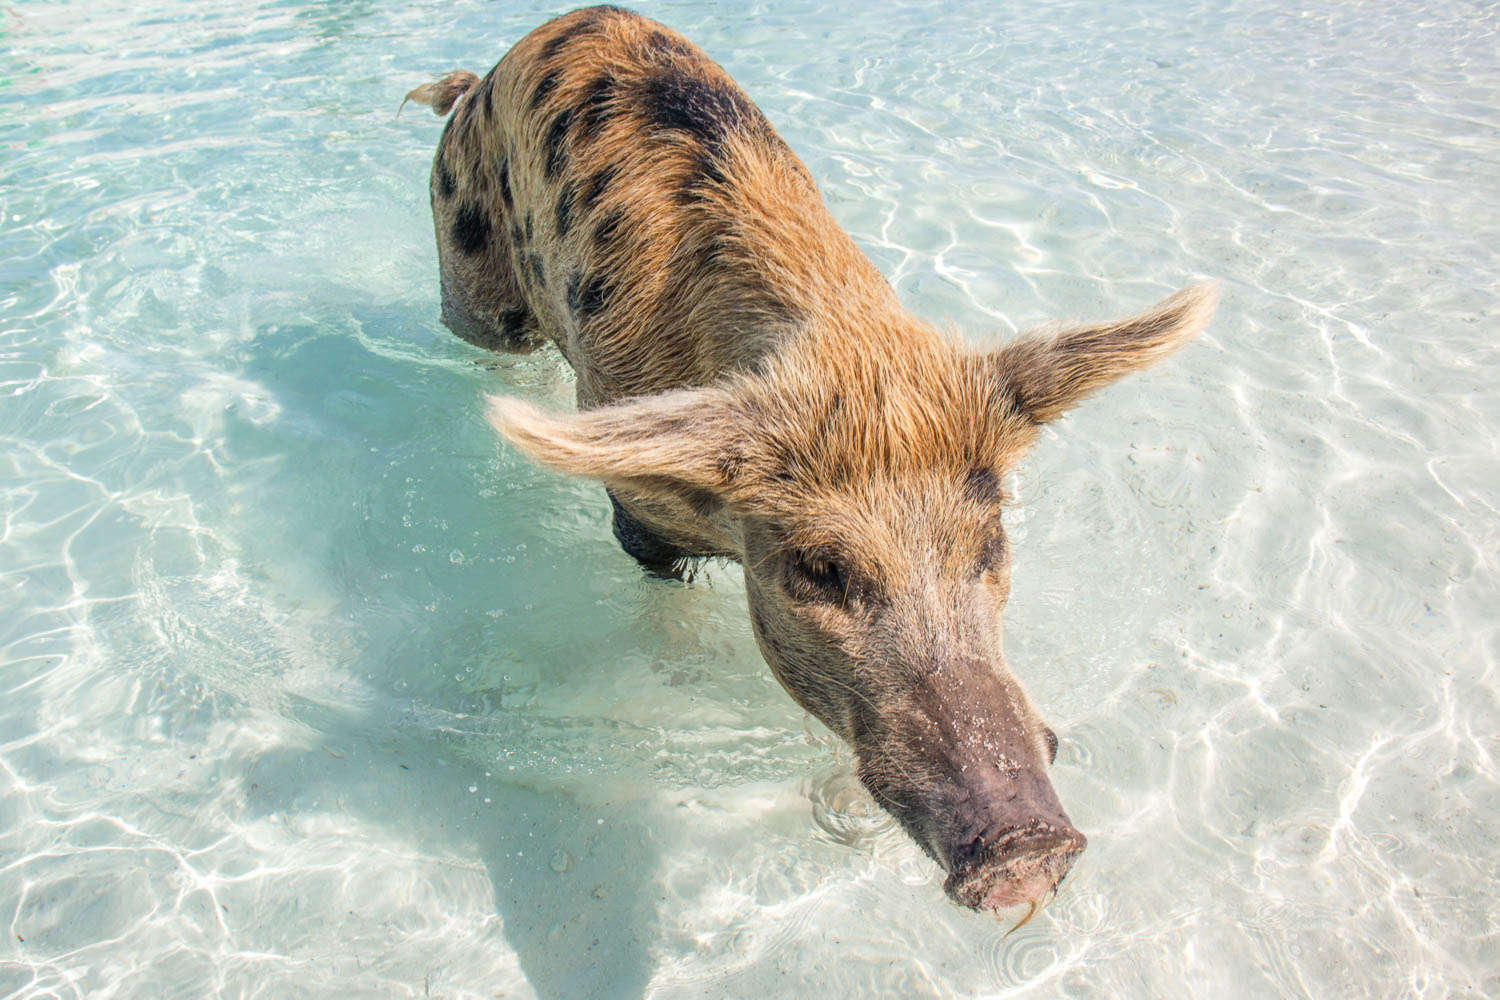 There are Pig Beach Exuma tours running from Nassau every day. Nassau to Pig Beach is just a short flight or ferry away.